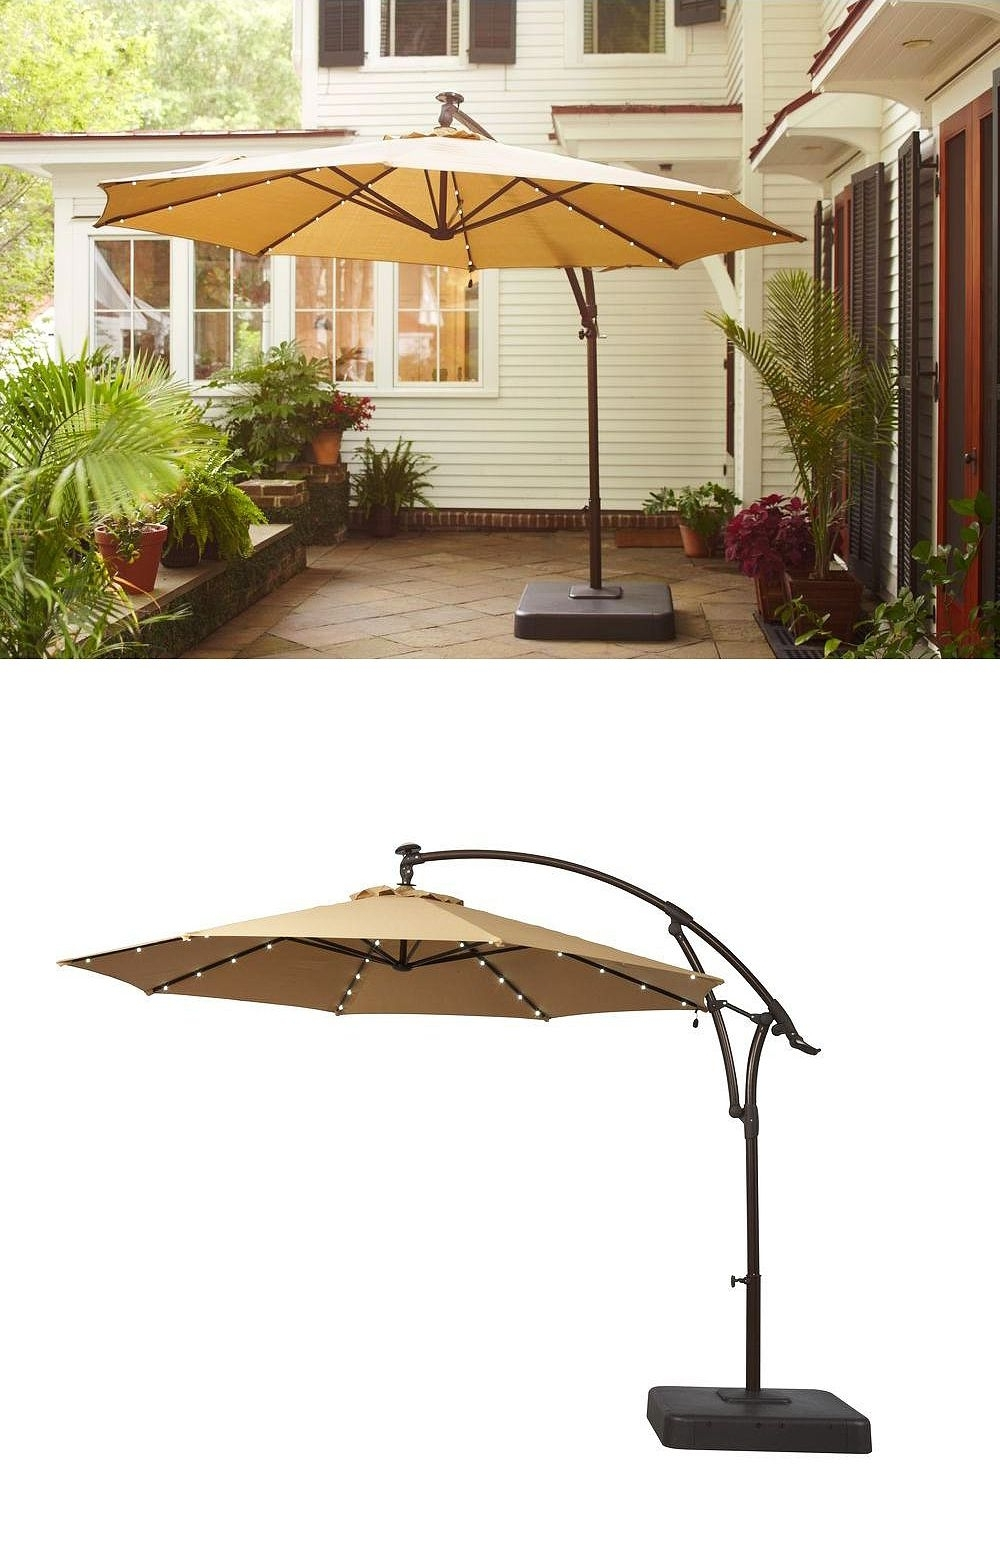 Sunbrella Patio Umbrellas With Solar Lights Regarding Newest There's Something Special About This Patio Umbrella: It Has Small (View 14 of 20)